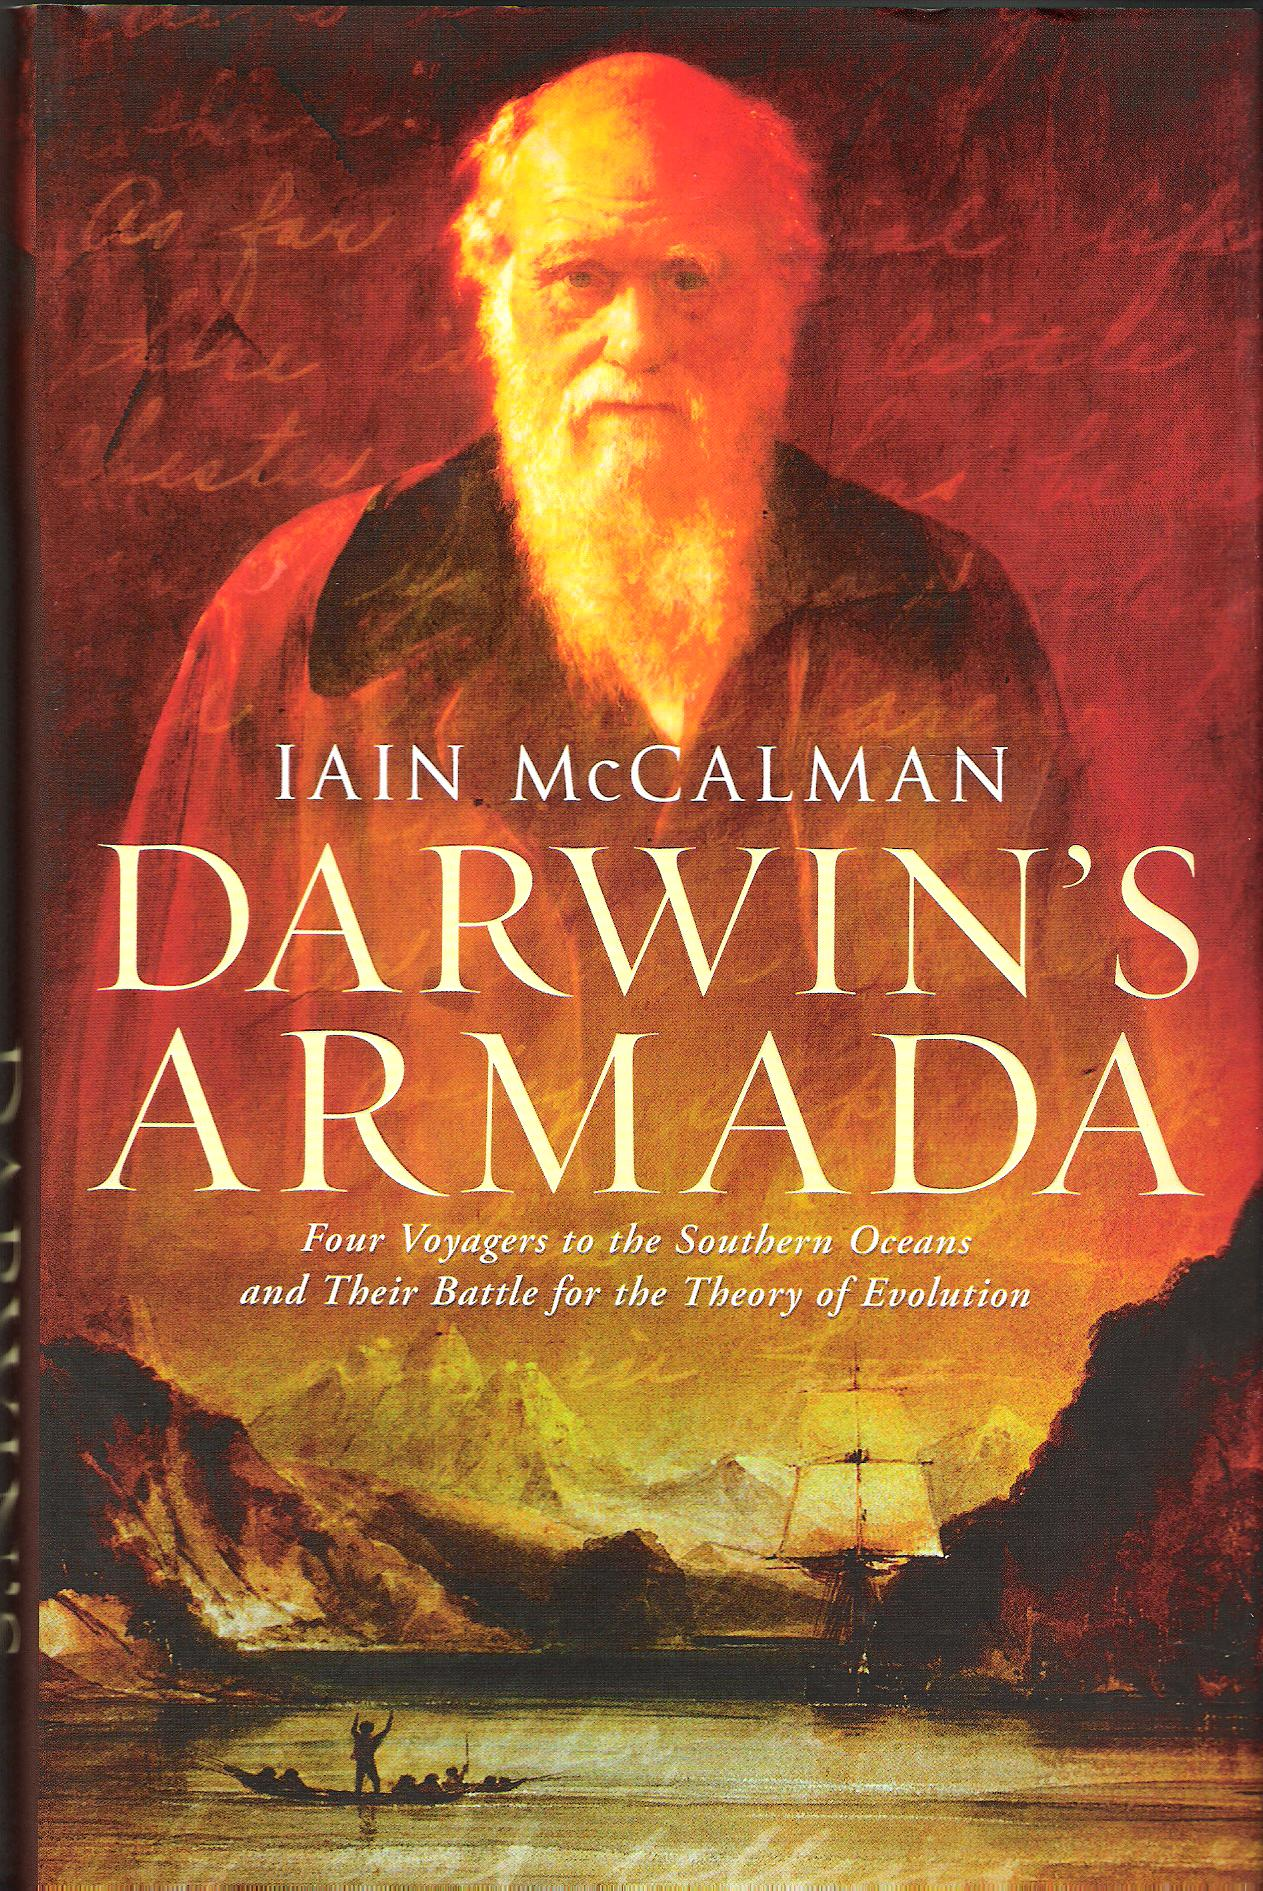 Image for Darwin's Armada: Four voyagers to the Southern Oceans and Their Battle for the Theory of Evolution.